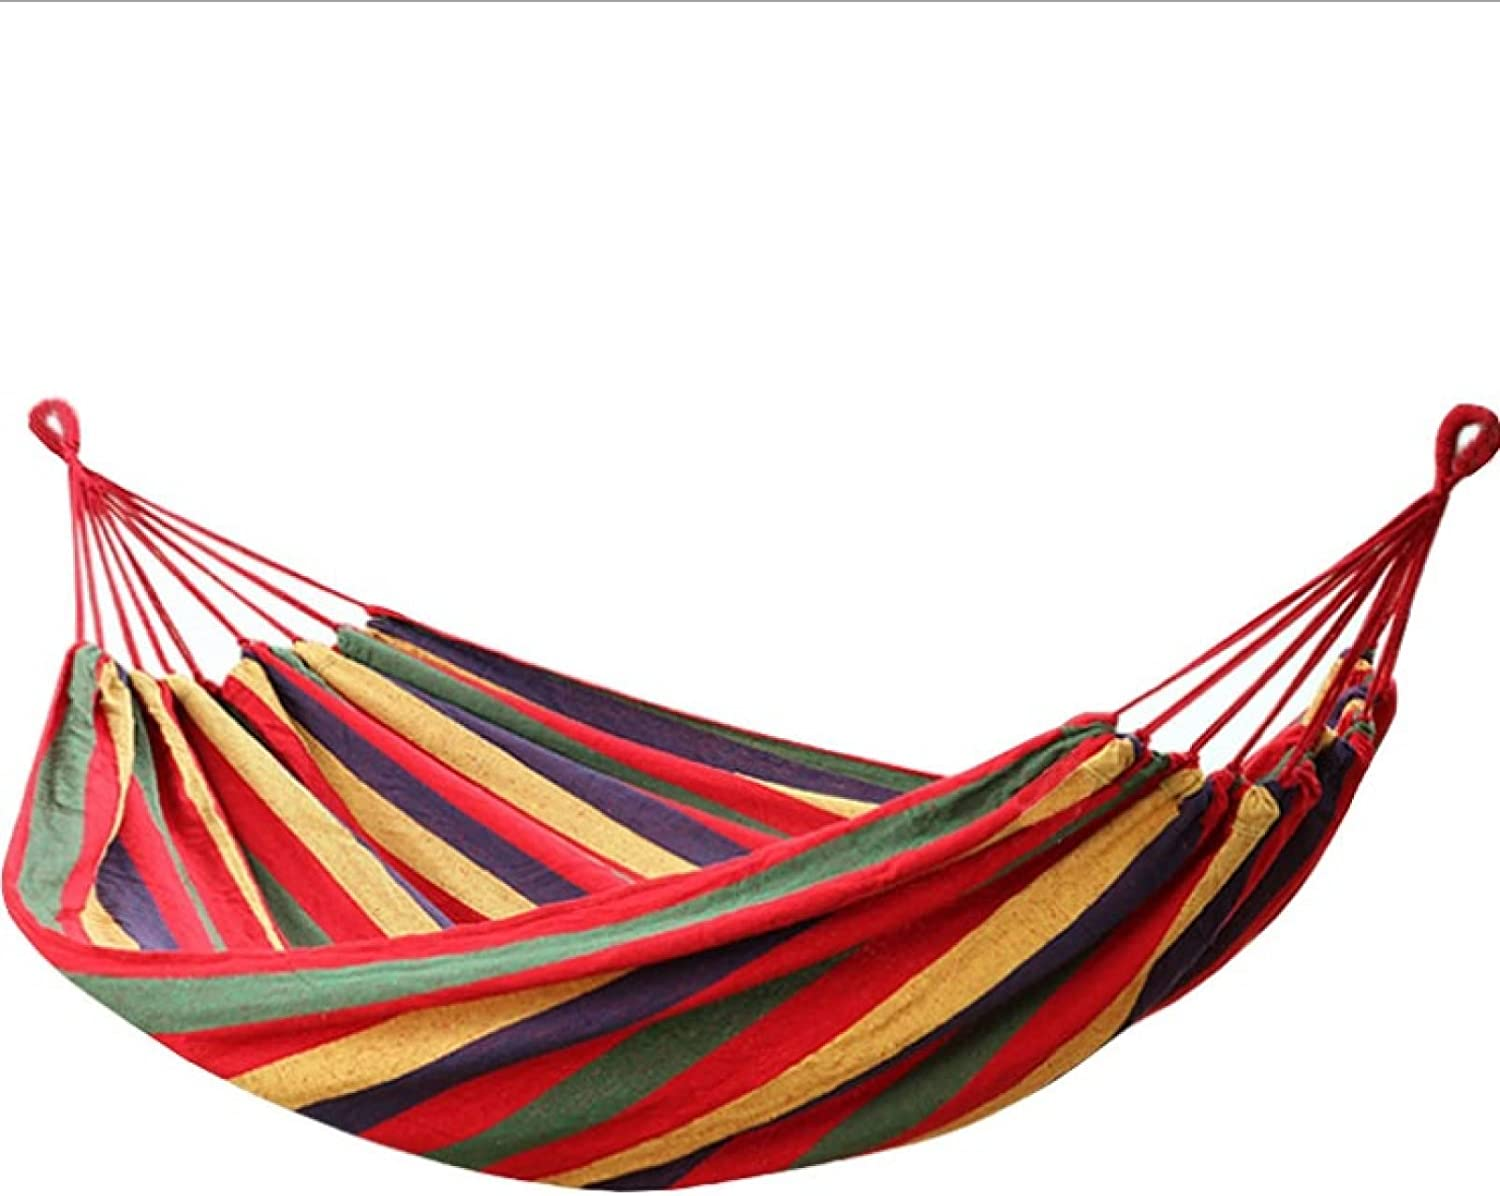 MIOAF Explosive Sales of SALE items from new works Hammock Outdoor Camping Leisure Single Goods Tulsa Mall Can